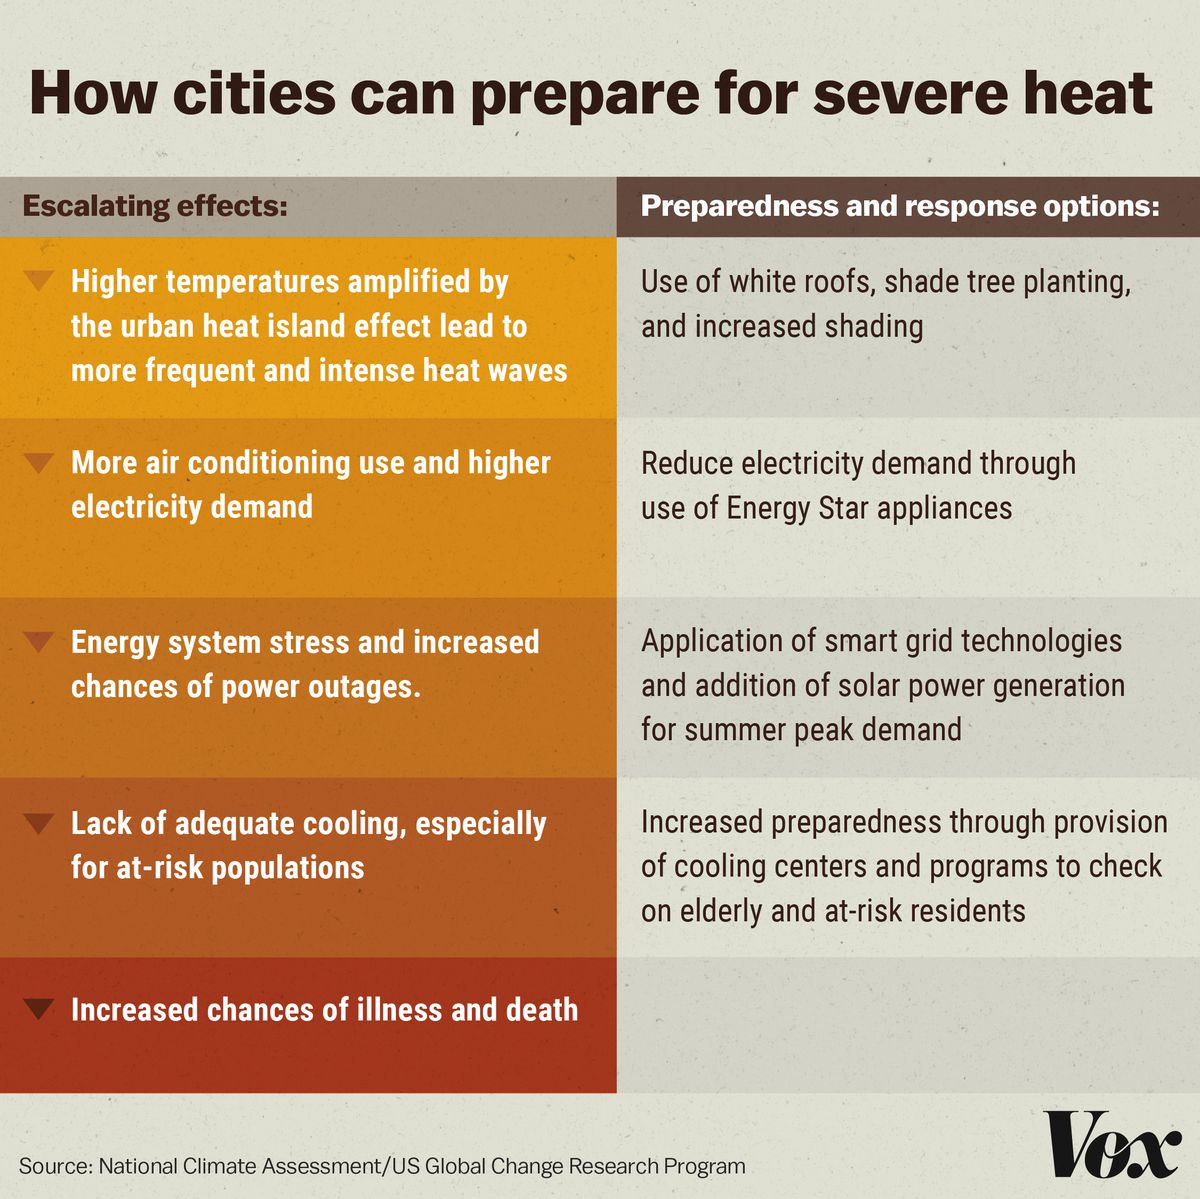 How cities can prepare for extreme heat